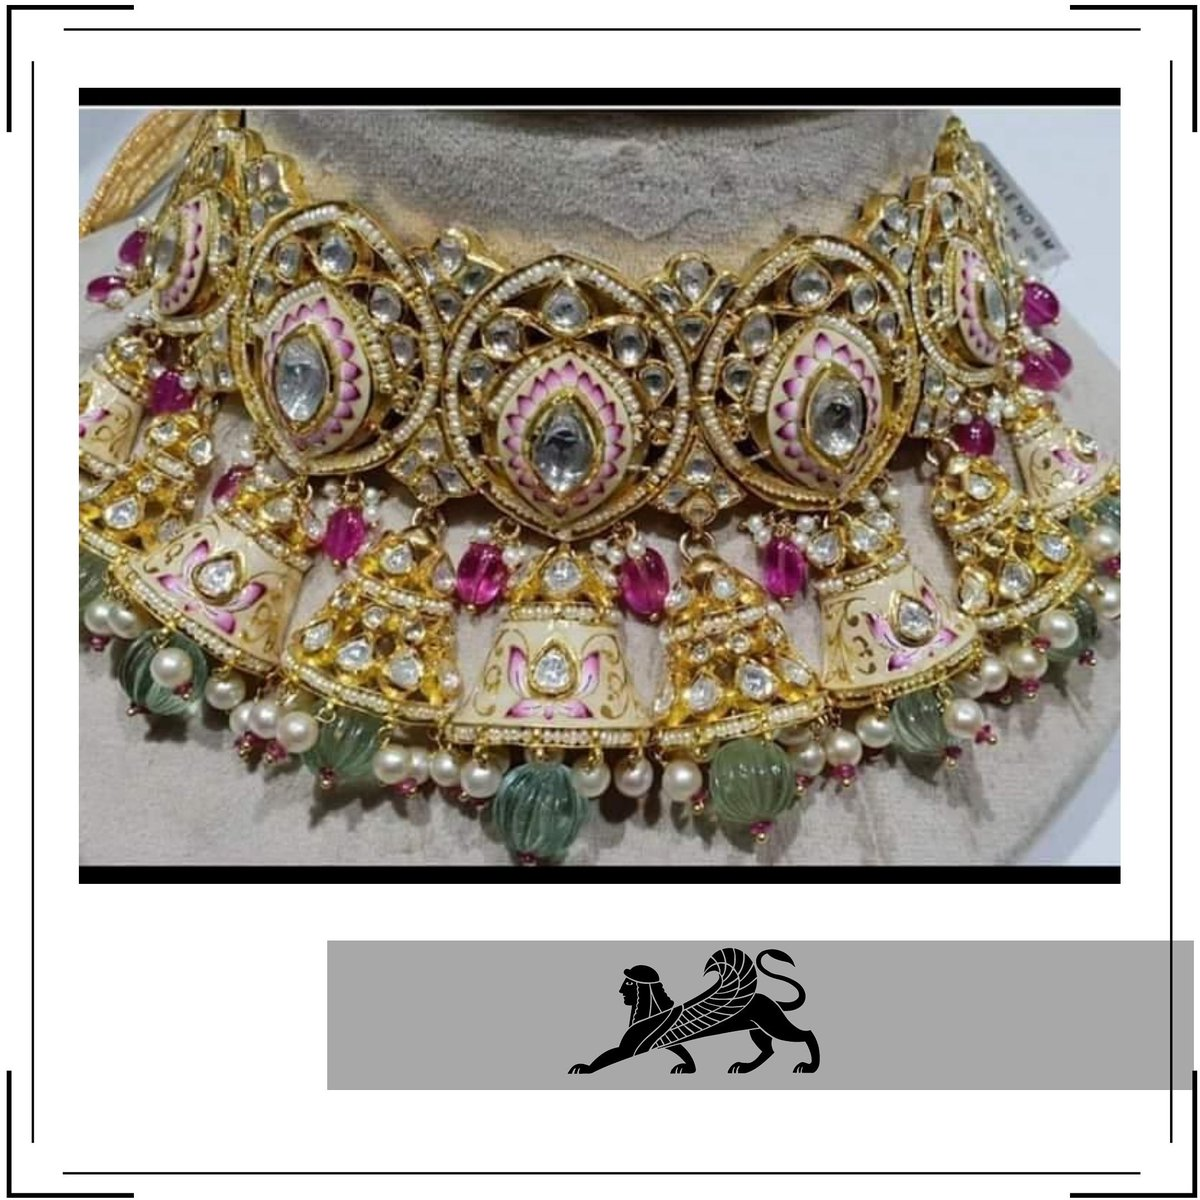 Incredible necklace ! #classy #golddetails Kadel Jewellers #heritagepic.twitter.com/aMU1LnfoYy